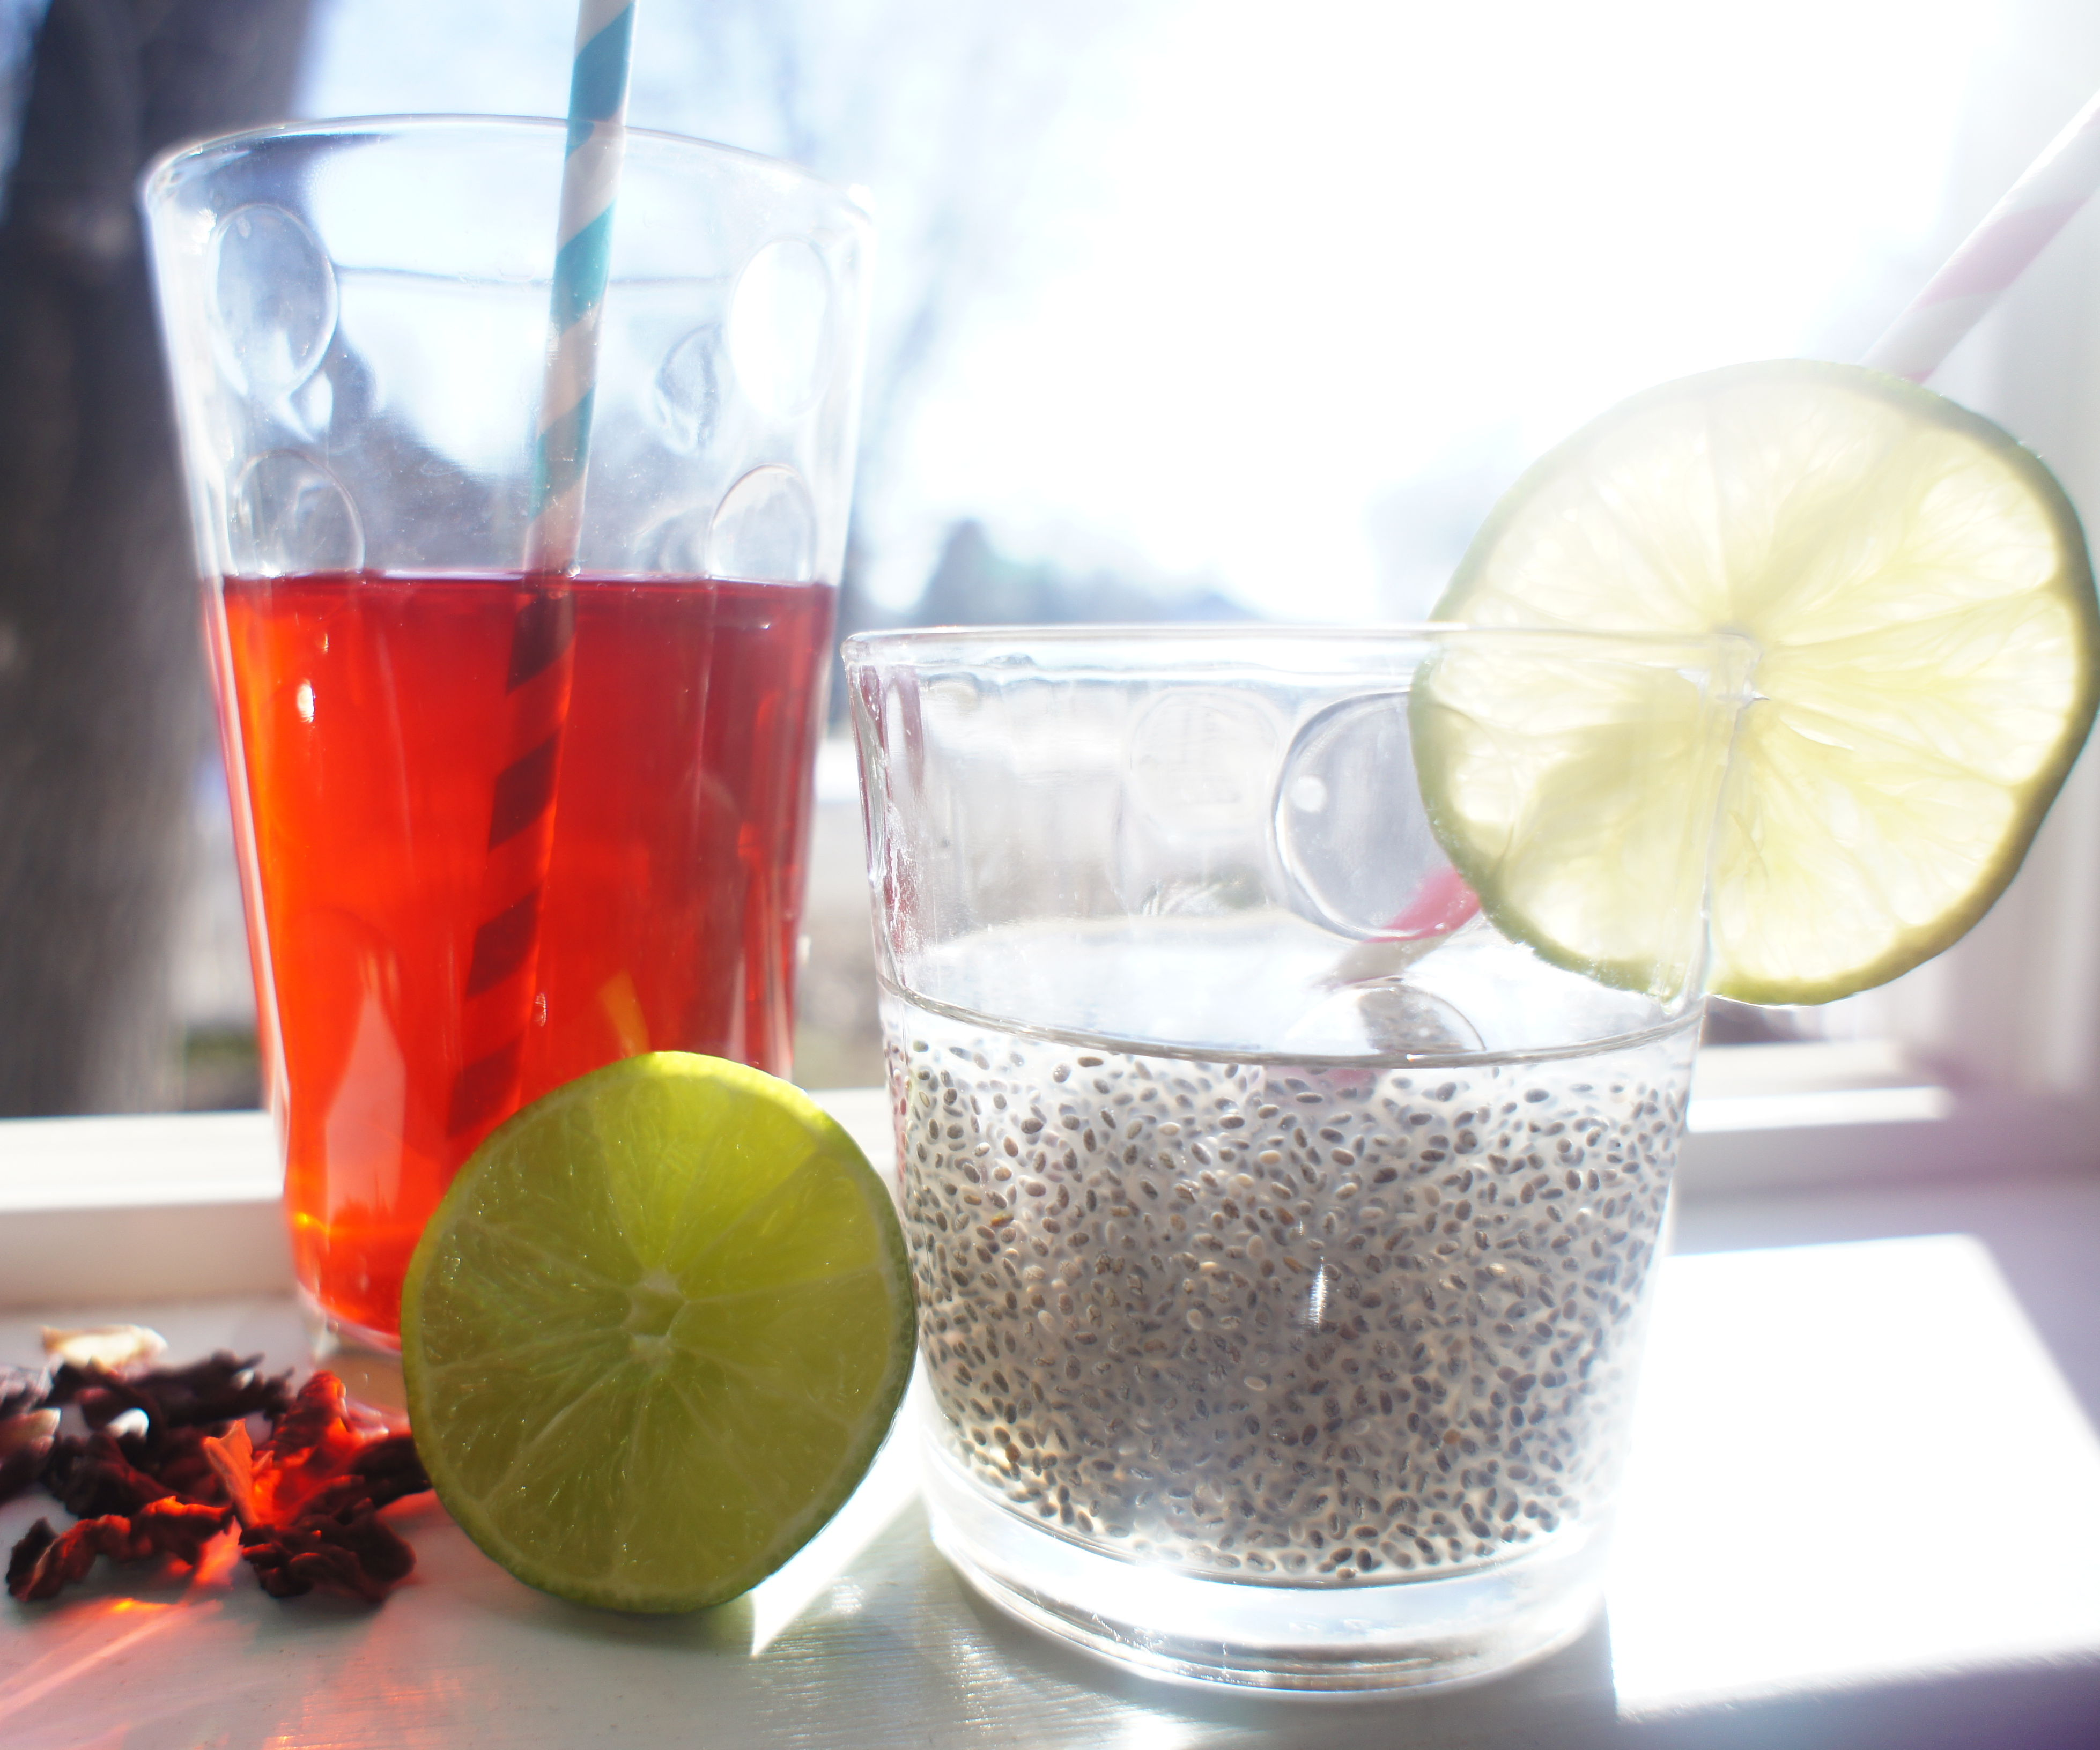 Chia Fresca: Add nutrients to any drink